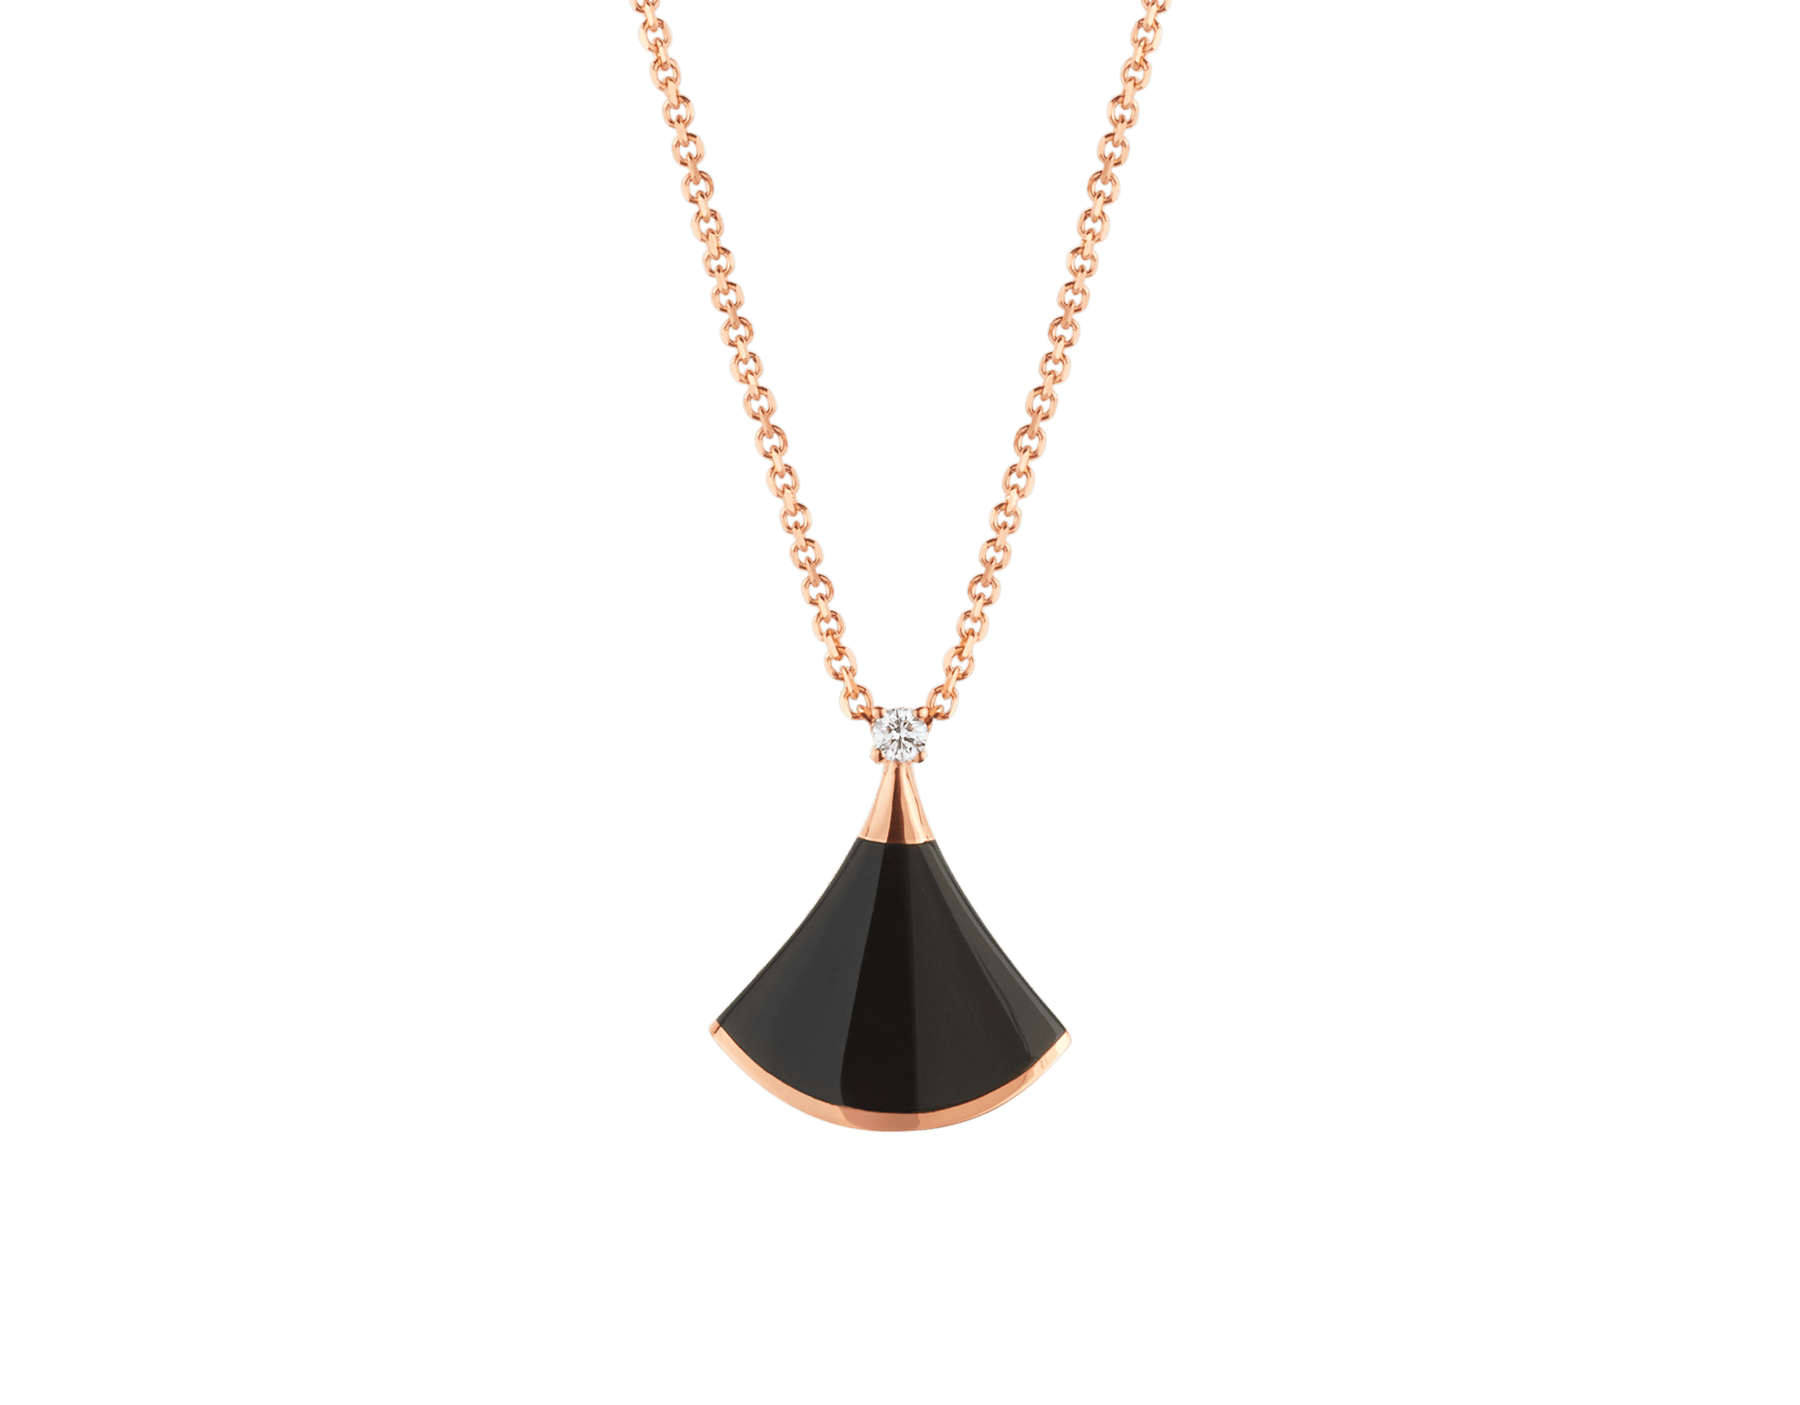 DIVAS' DREAM necklace in 18 kt rose gold with 18 kt rose gold pendant set with onyx and one diamond. 350582 image 1